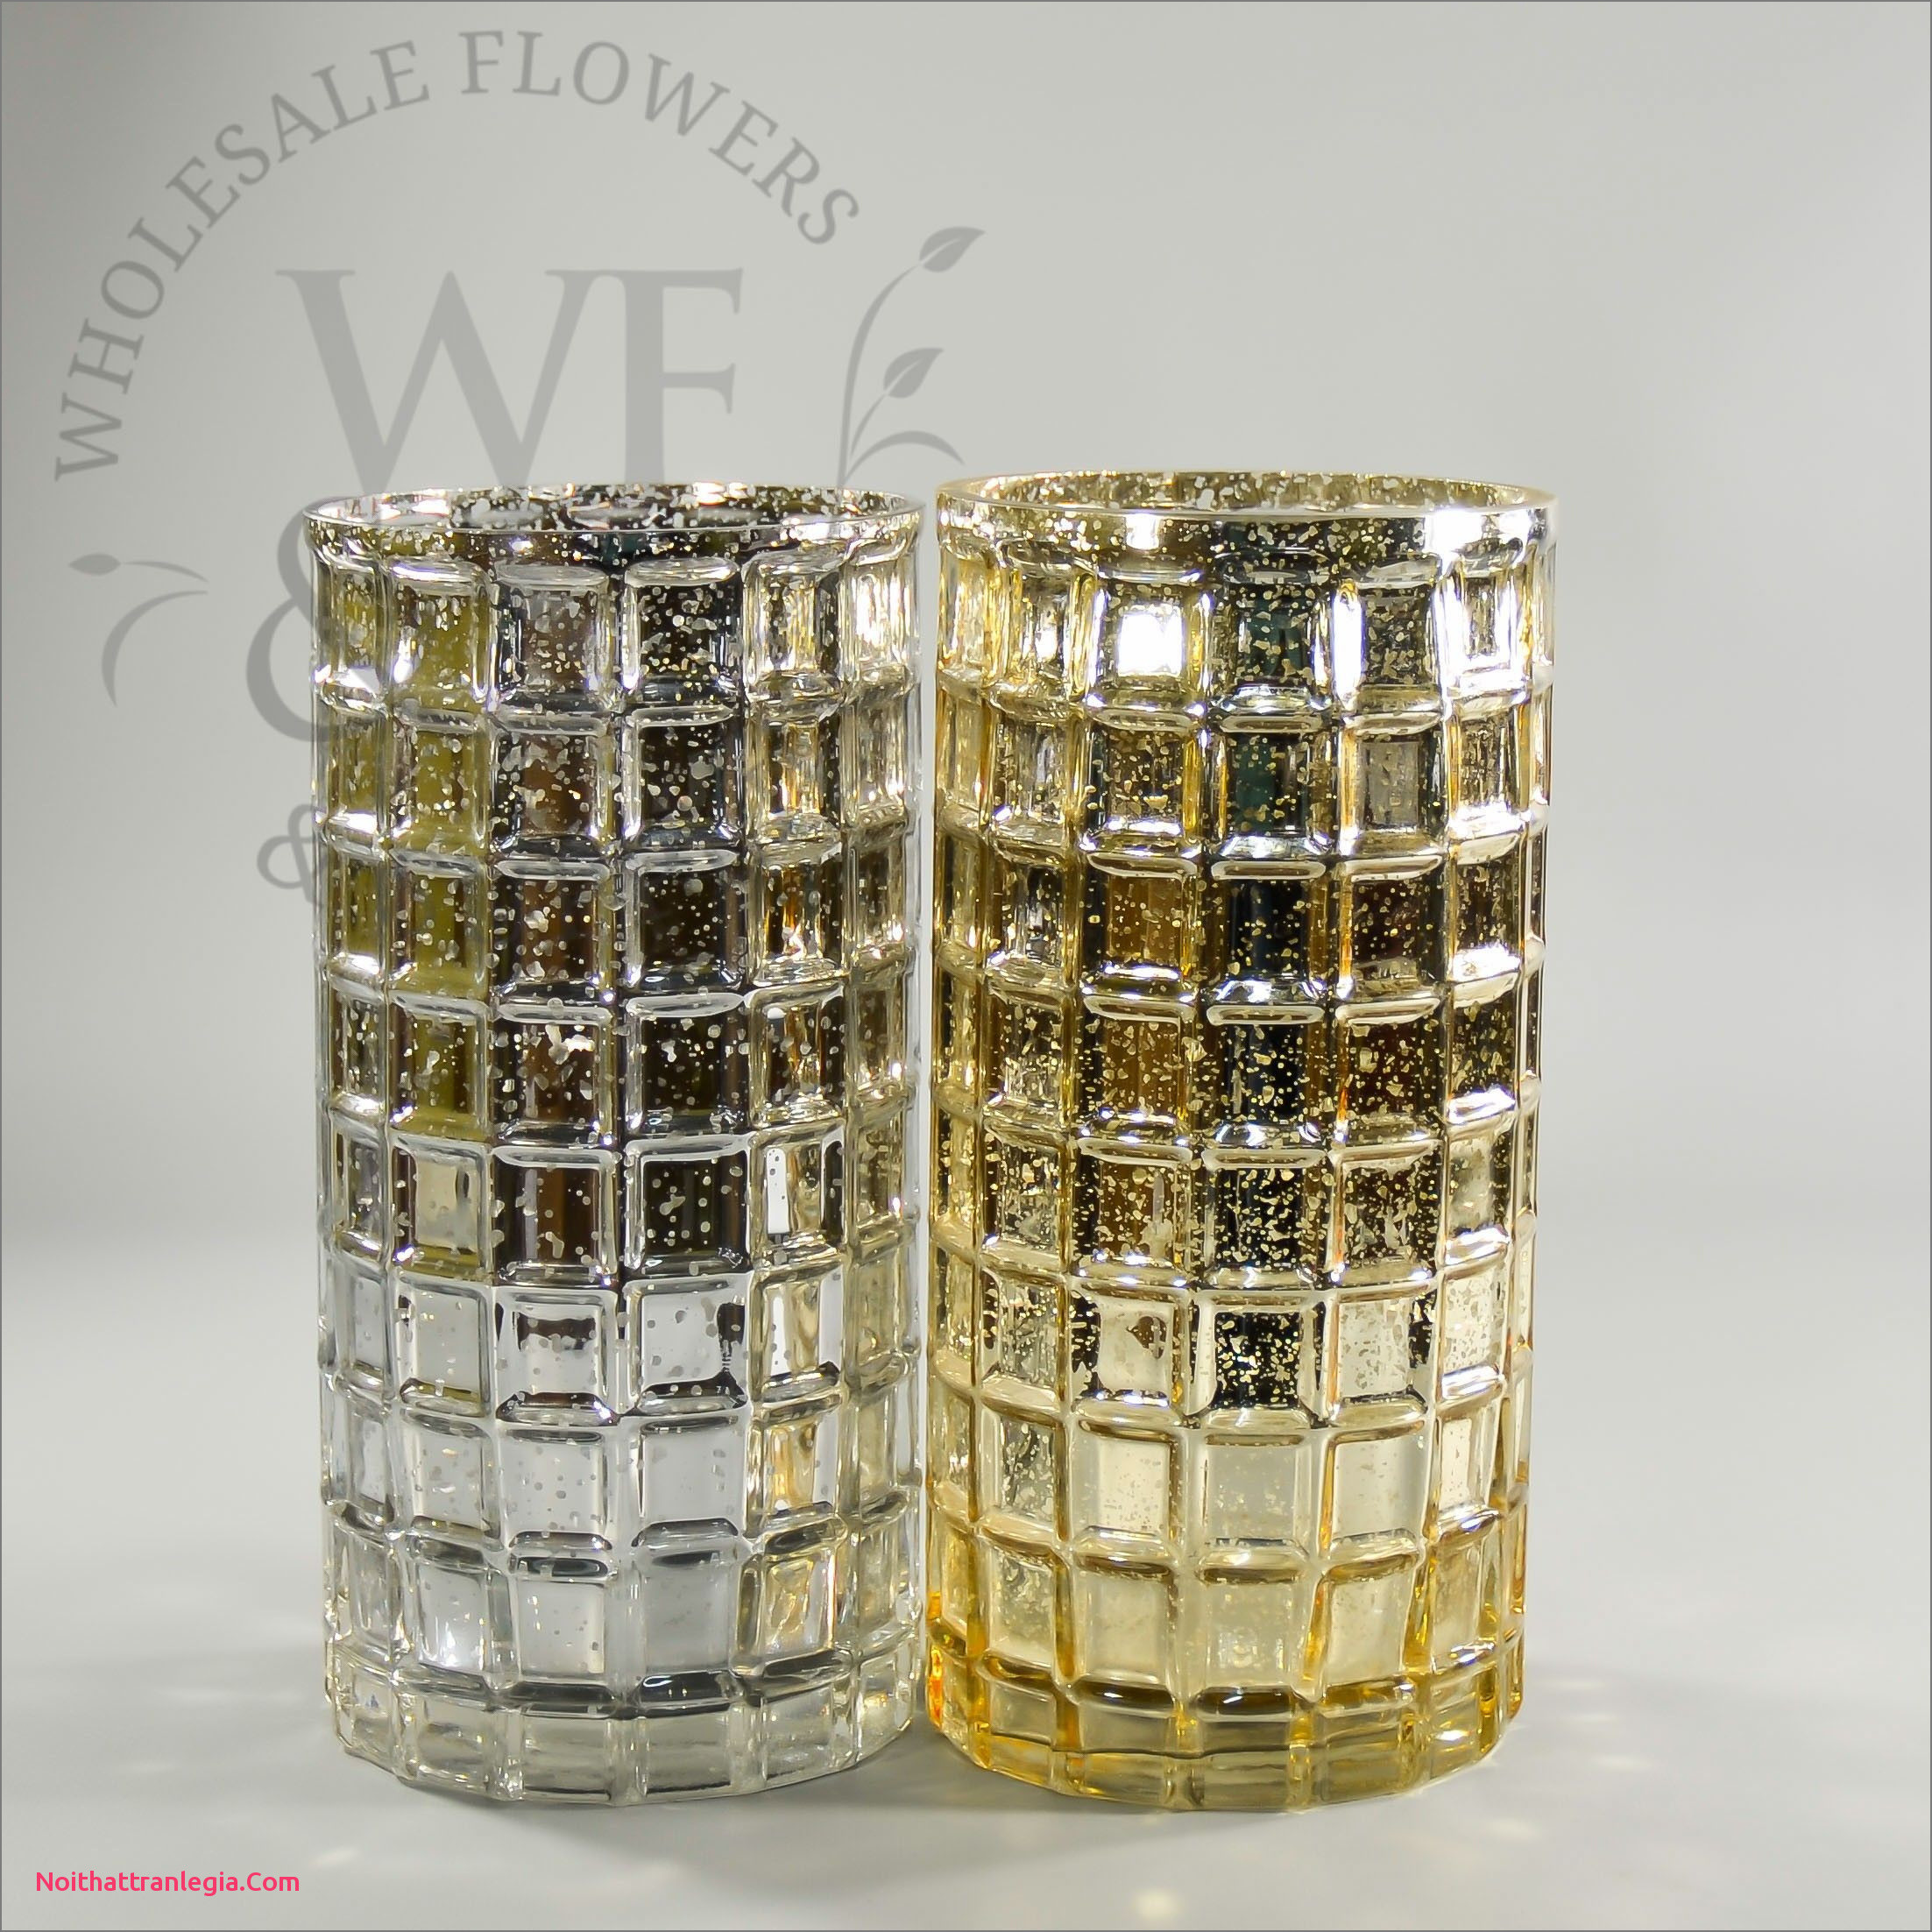 large square clear glass vases of 20 how to make mercury glass vases noithattranlegia vases design with regard to mercury glass mosaic cylinder vase in silver and gold 10 tall wholesaleflowe